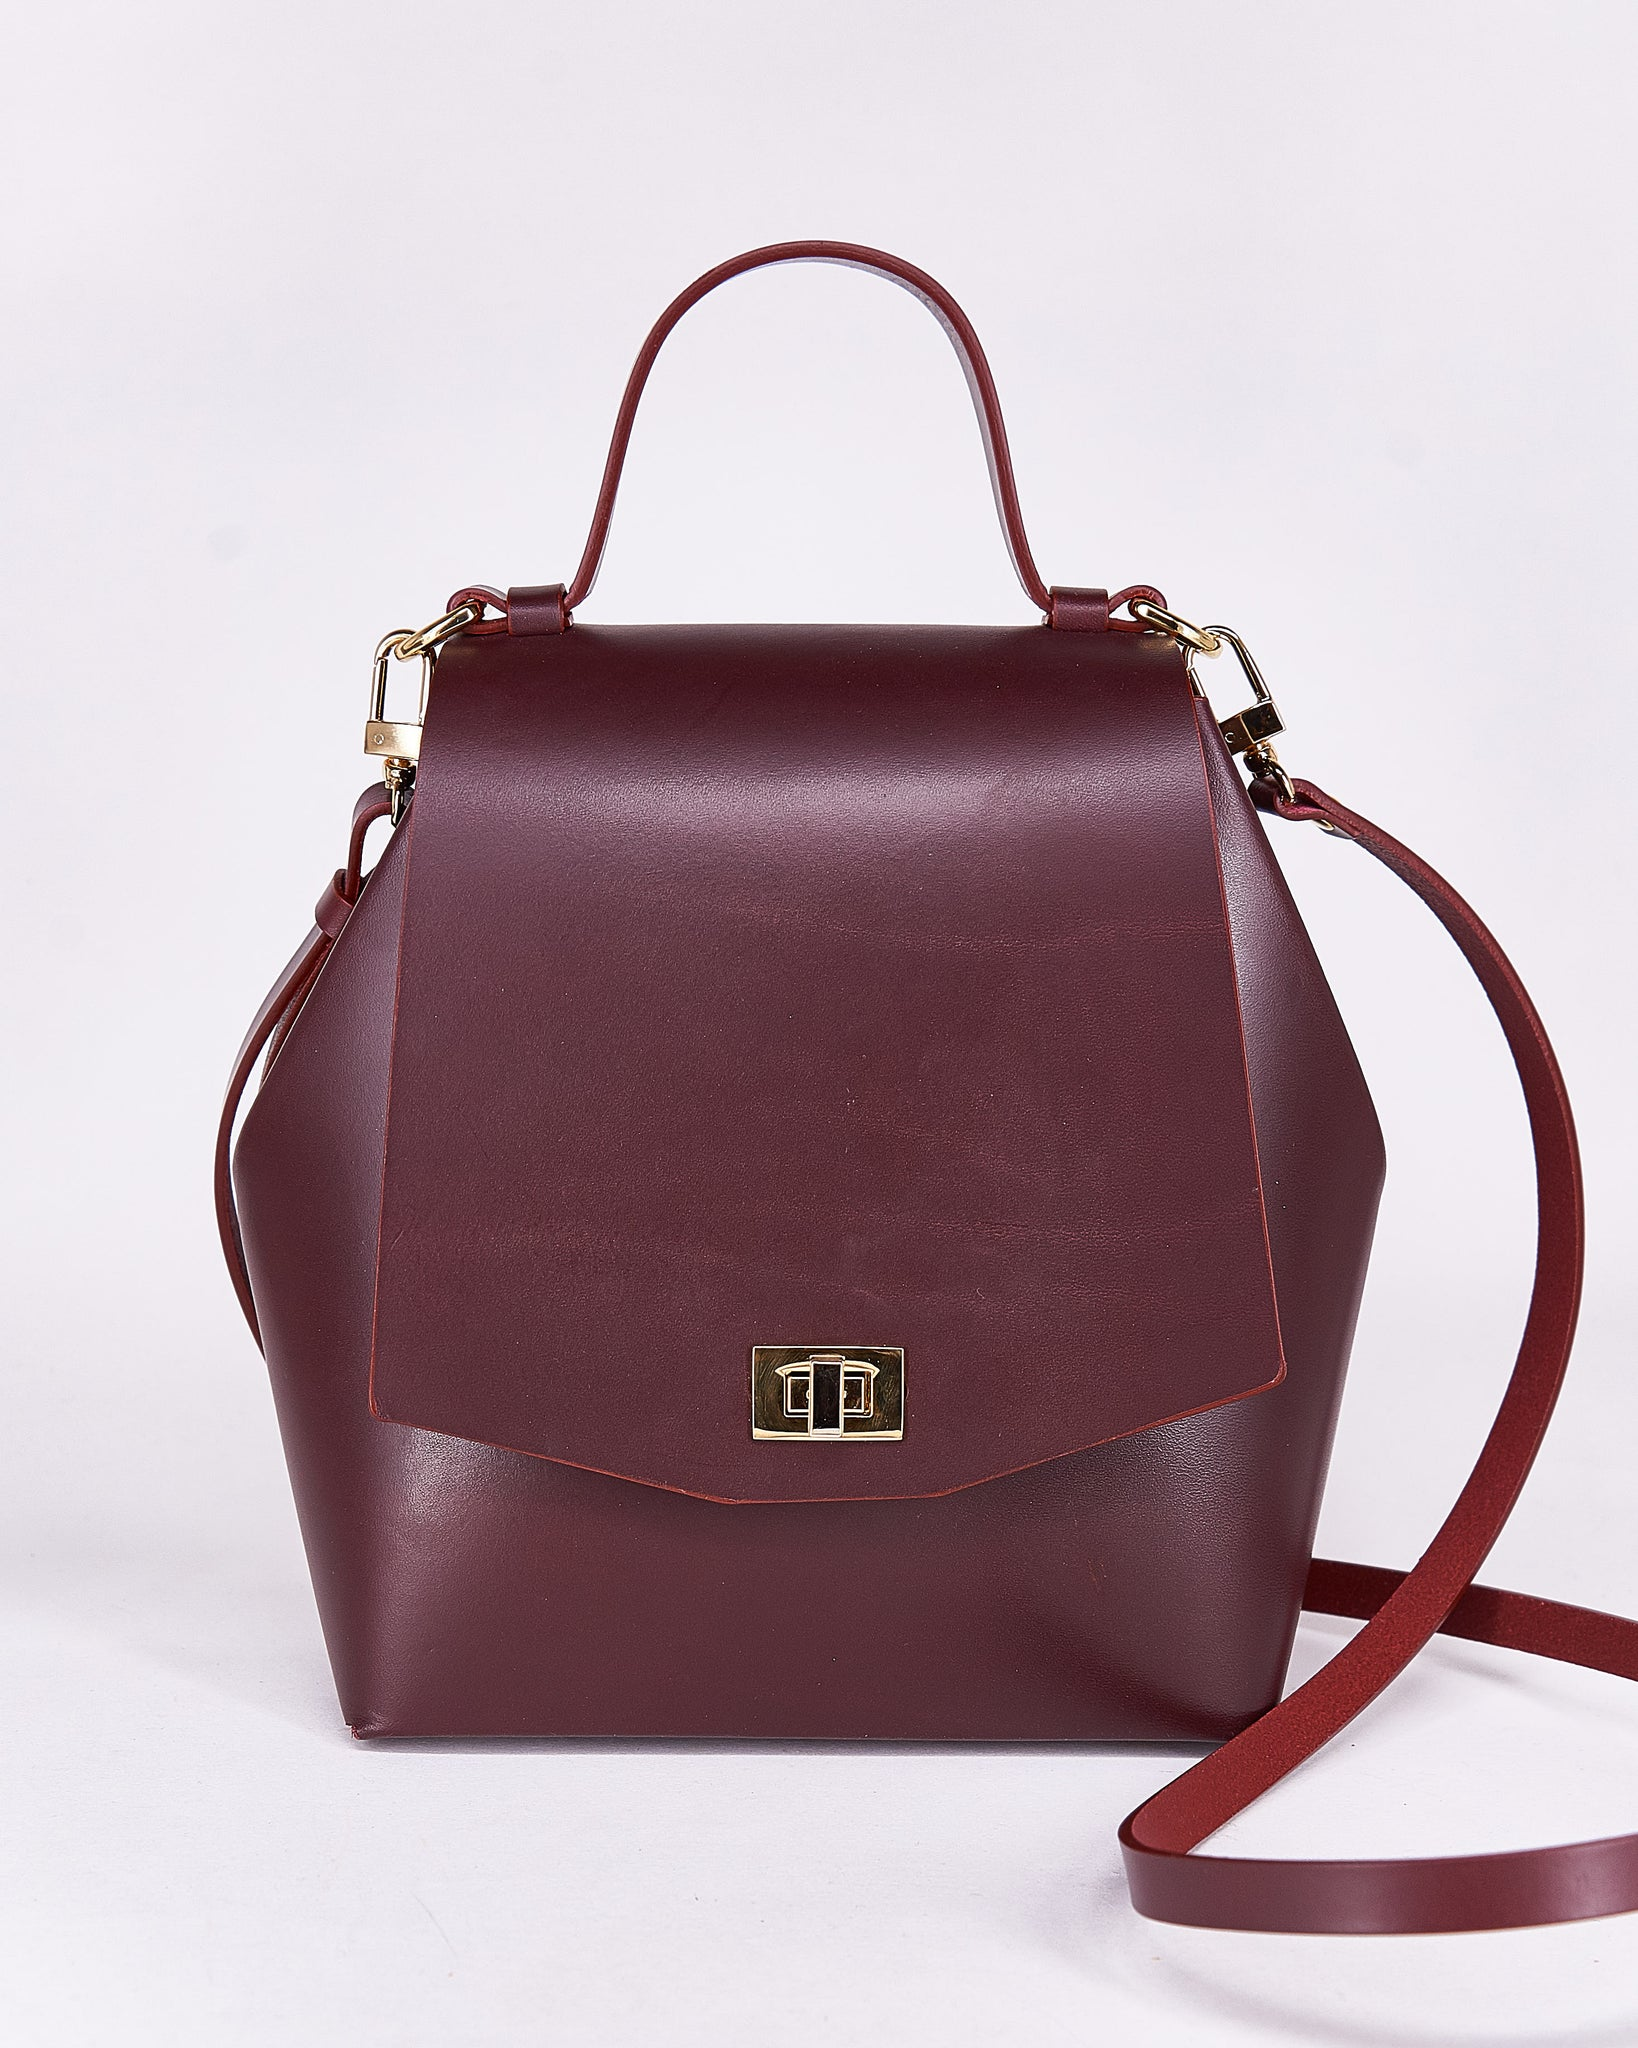 Hex Bag-Bordeaux-Leather-Designed by Nuovum-Localdesigners-Barcelona-Front strap